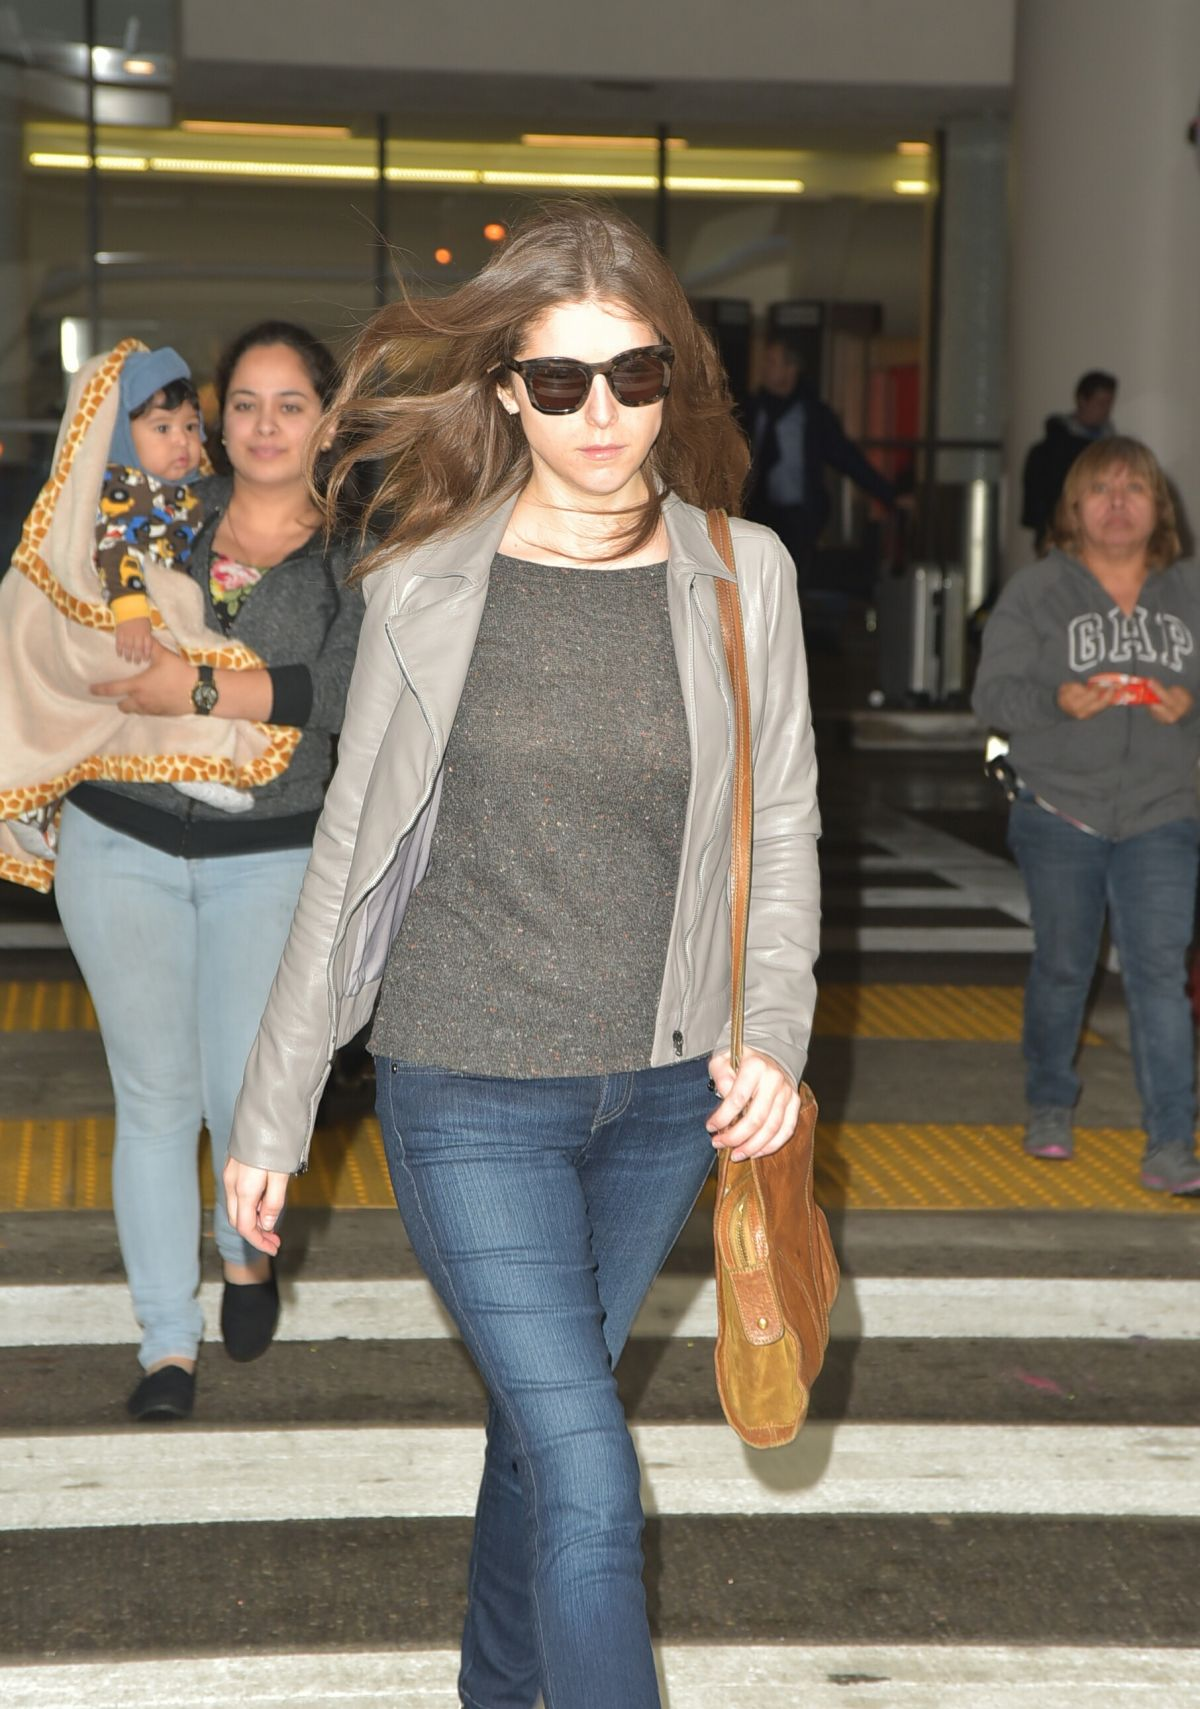 ANNA KENDRICK at Los Angeles International Airport 04/07/2016